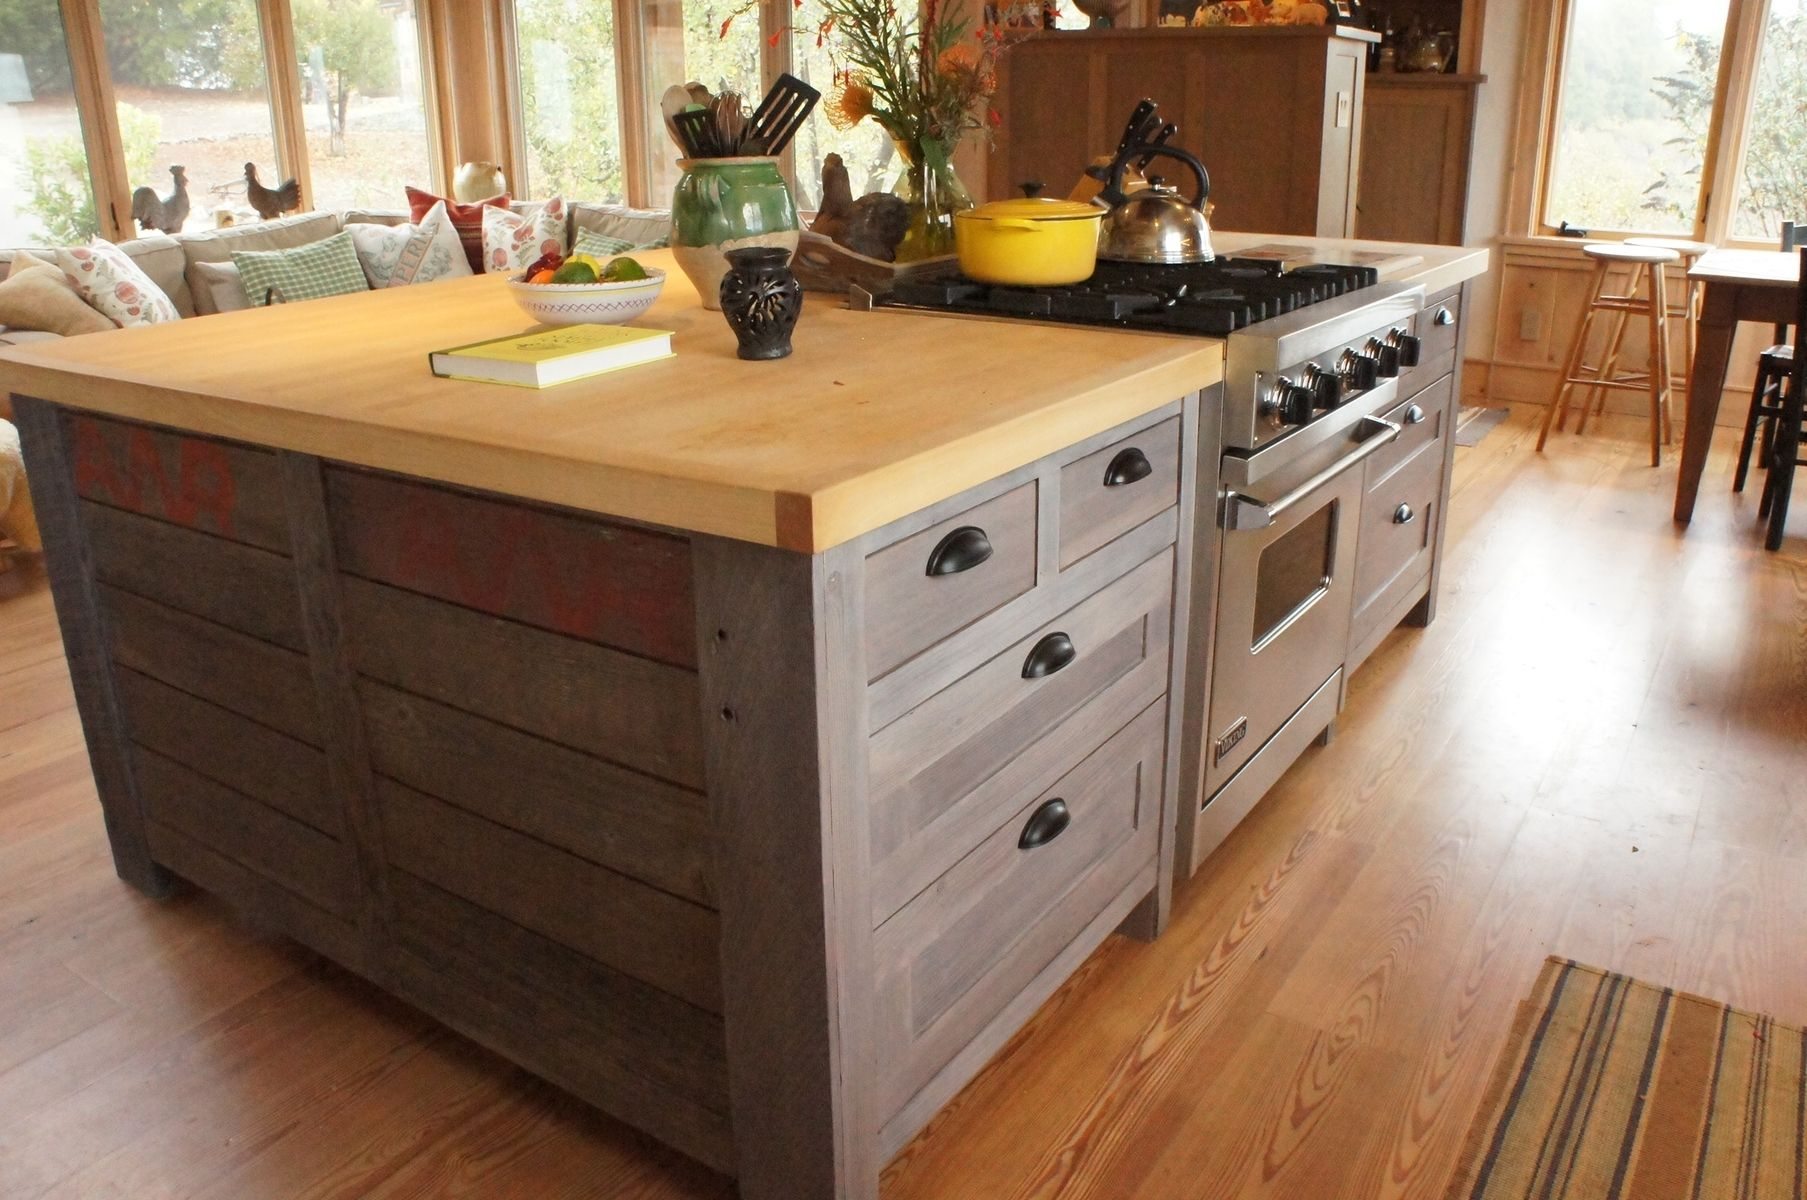 Custom Made Rustic Kitchen IslandHand Crafted Rustic Kitchen Island by Atlas Stringed Instruments  . Rustic Kitchen Island. Home Design Ideas